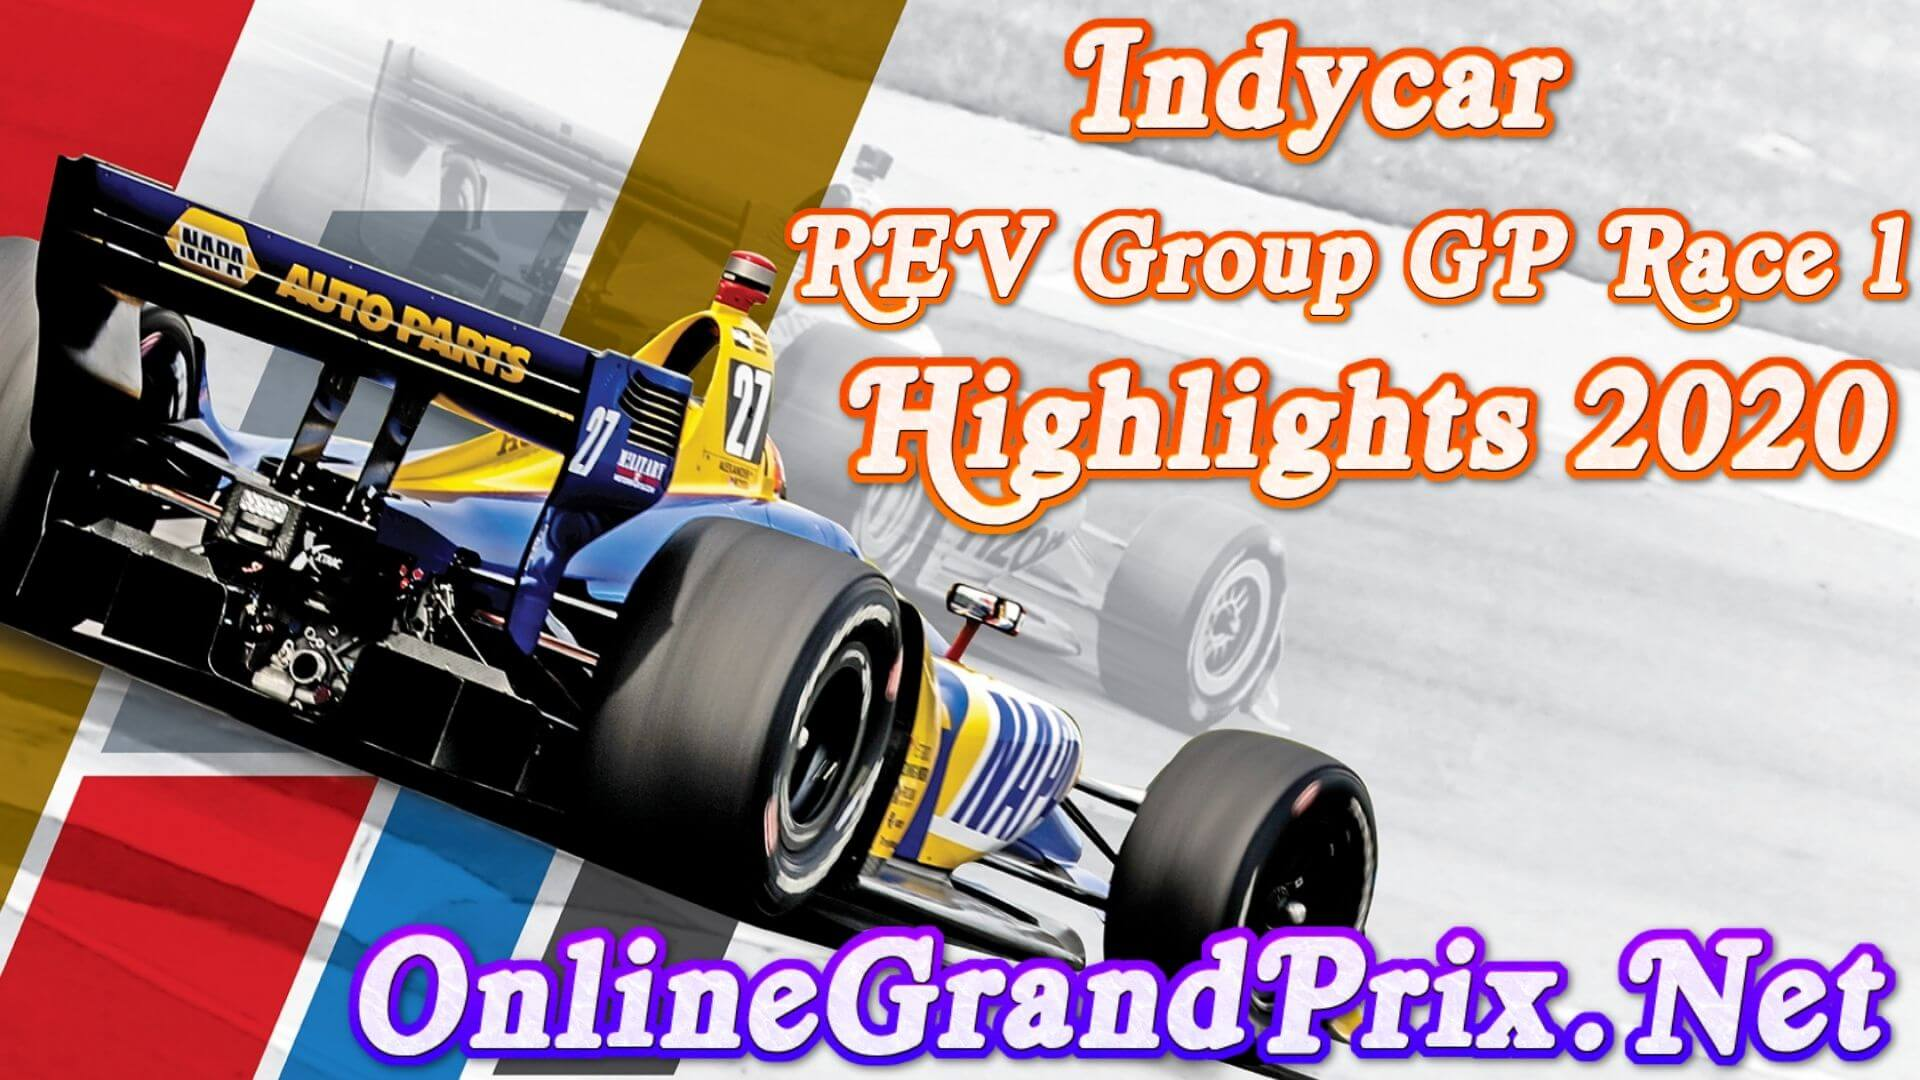 REV Group Grand Prix Race 1 Highlights INDYCAR 2020